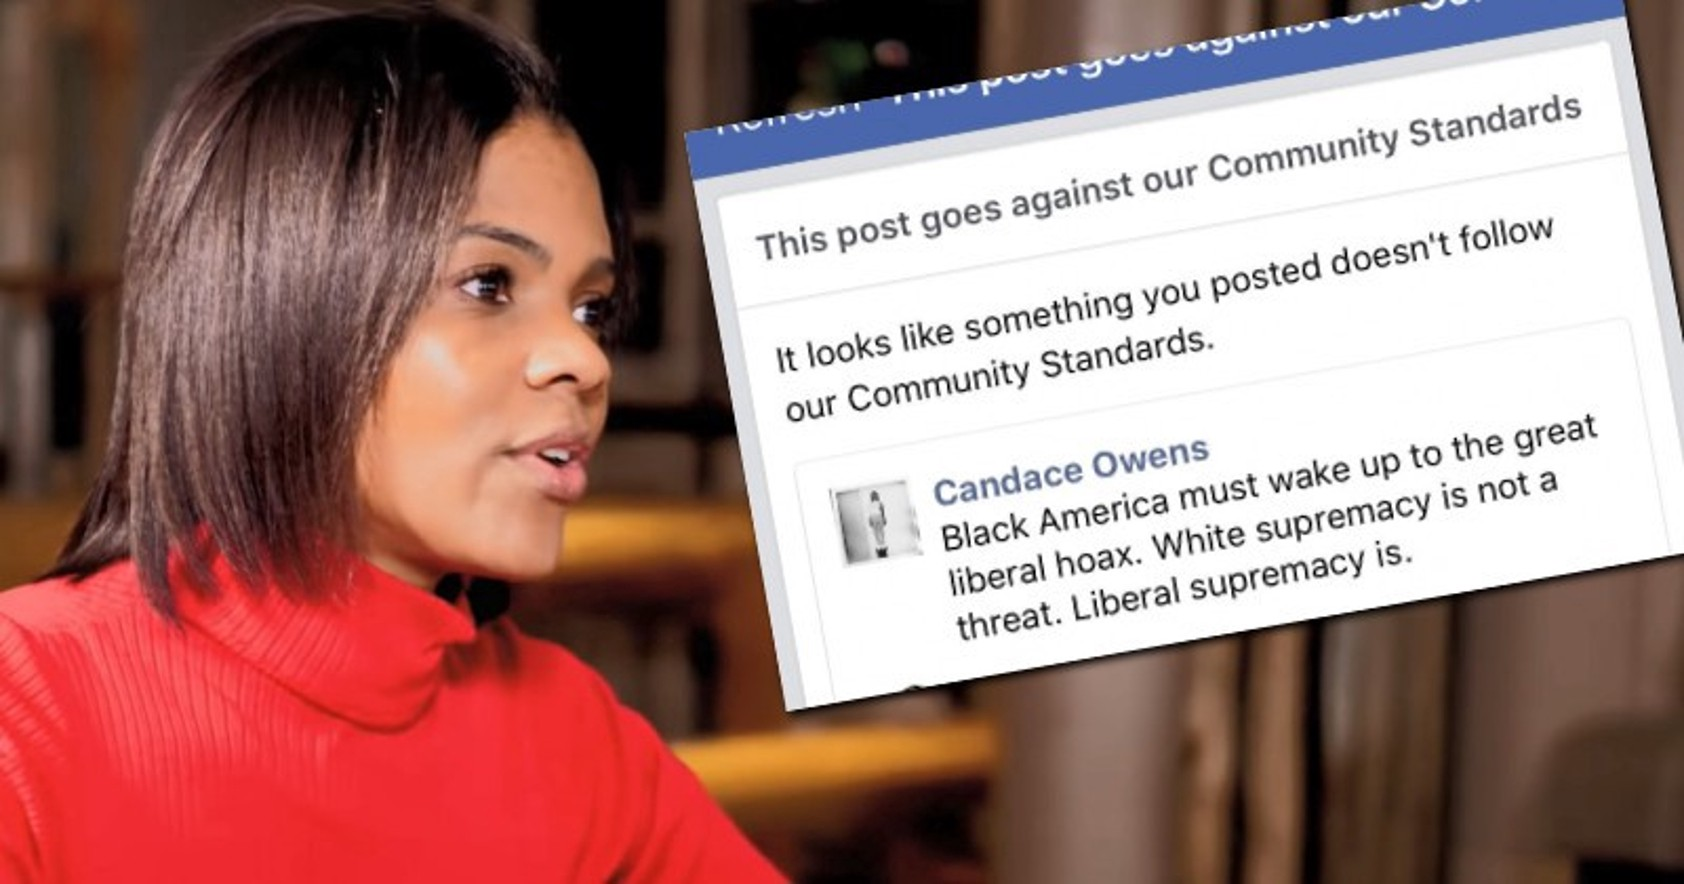 Candace Owens Happens When Facts Have No History - Sam